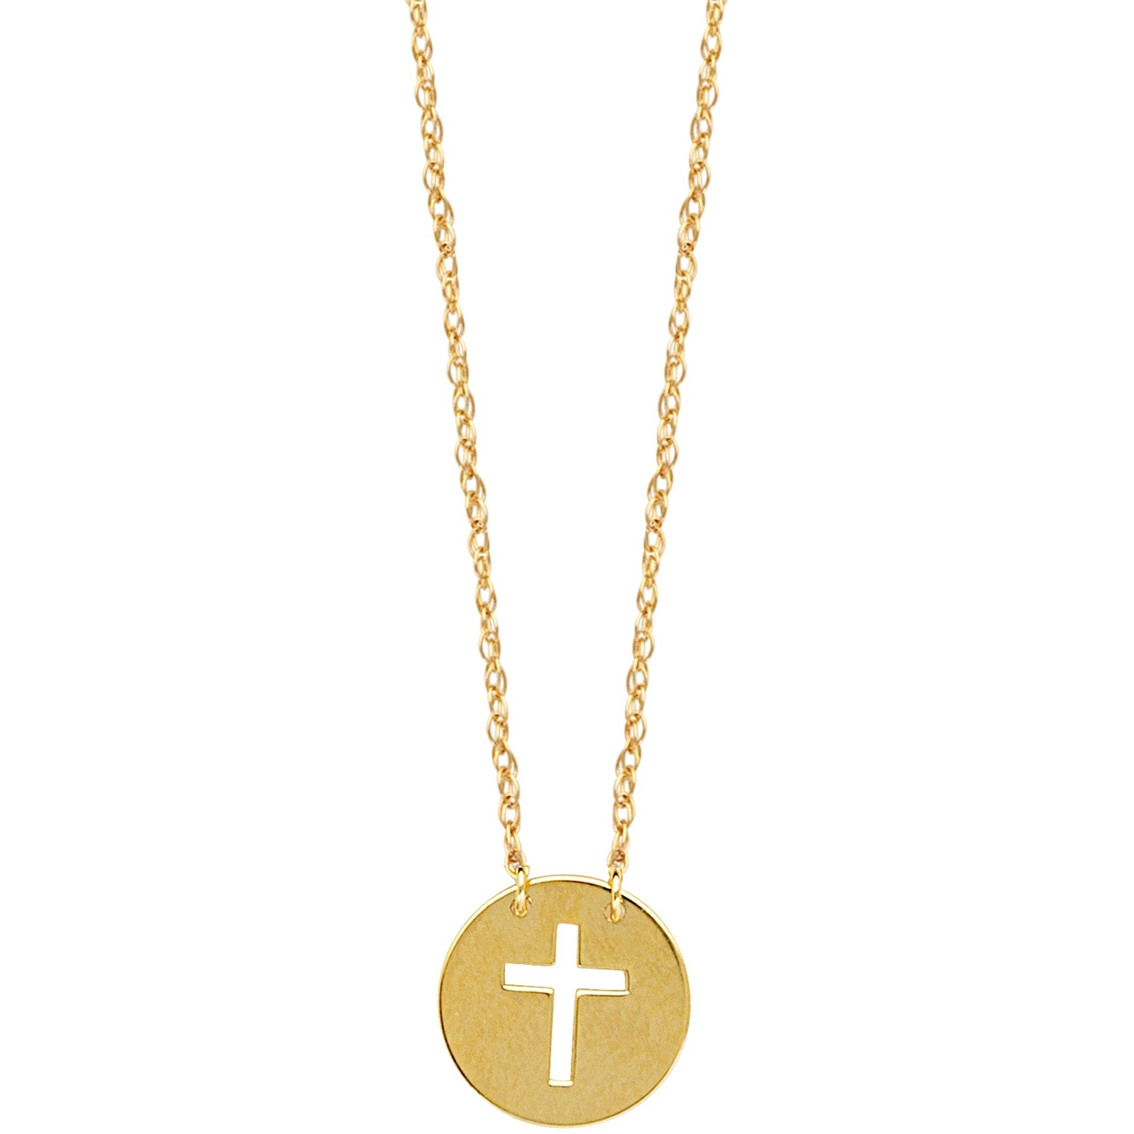 ebd58672ab42 14k Yellow Gold Mini Disk Cutout Cross Necklace | Gold Necklaces ...